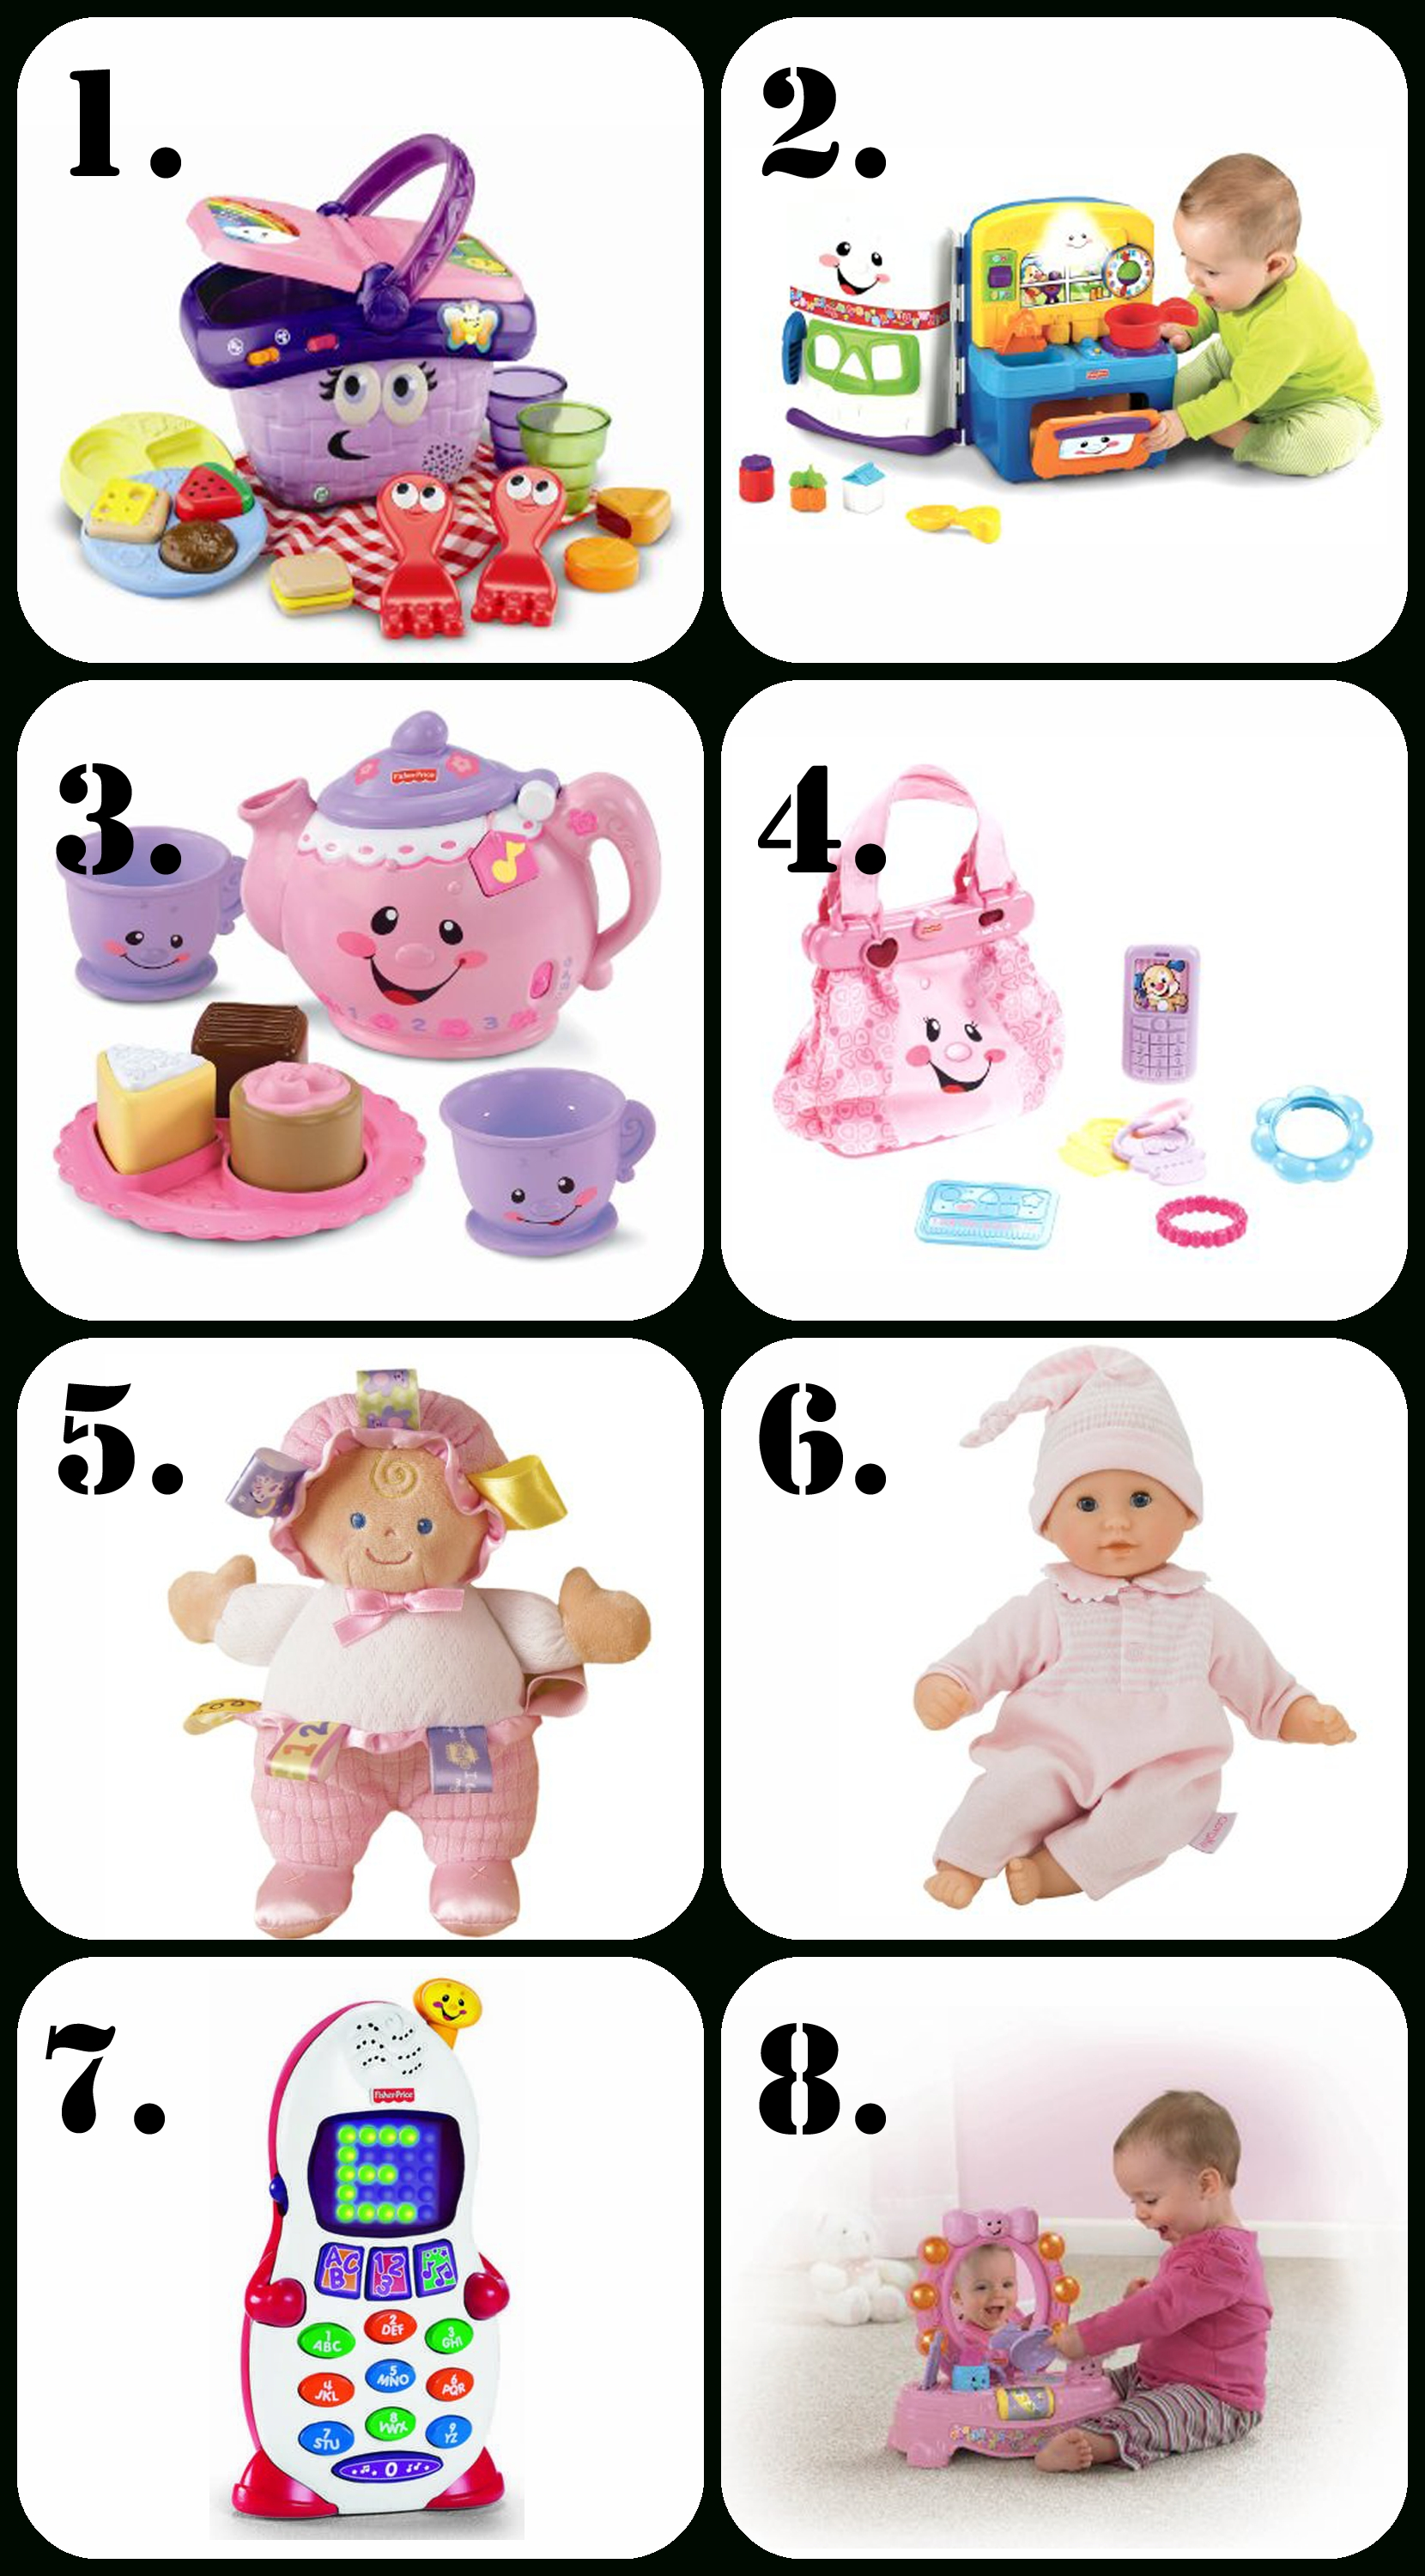 10 Pretty Gift Ideas For One Year Old Girl best birthday presents for a 1 year old creative home family 4 2020